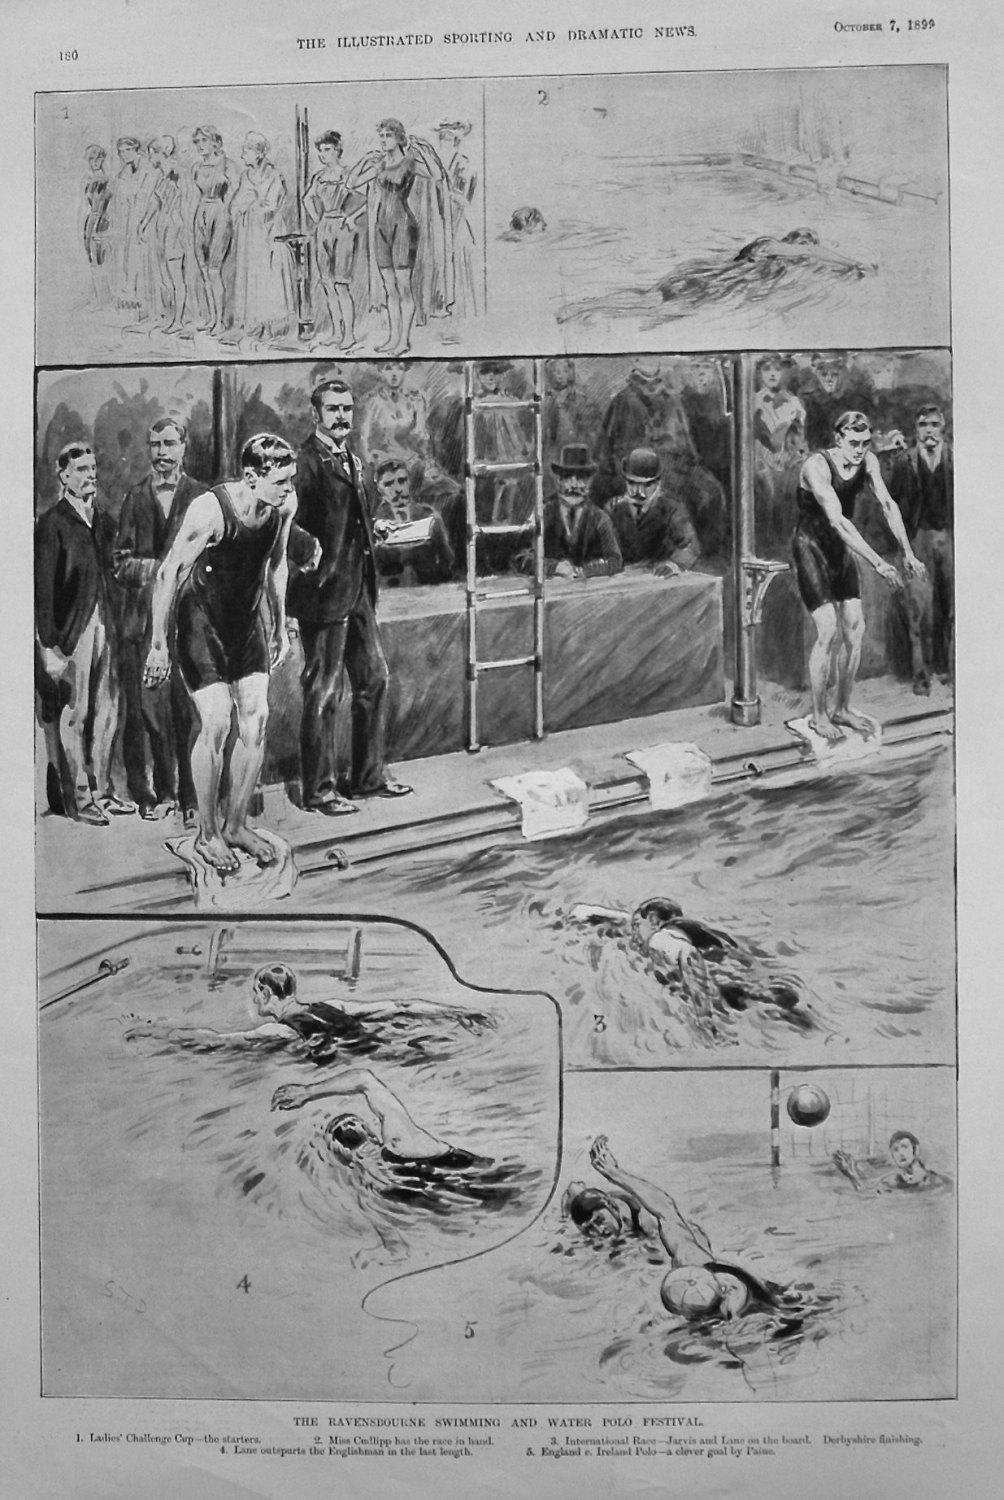 The Ravensbourne Swimming and Water Polo Festival. 1899